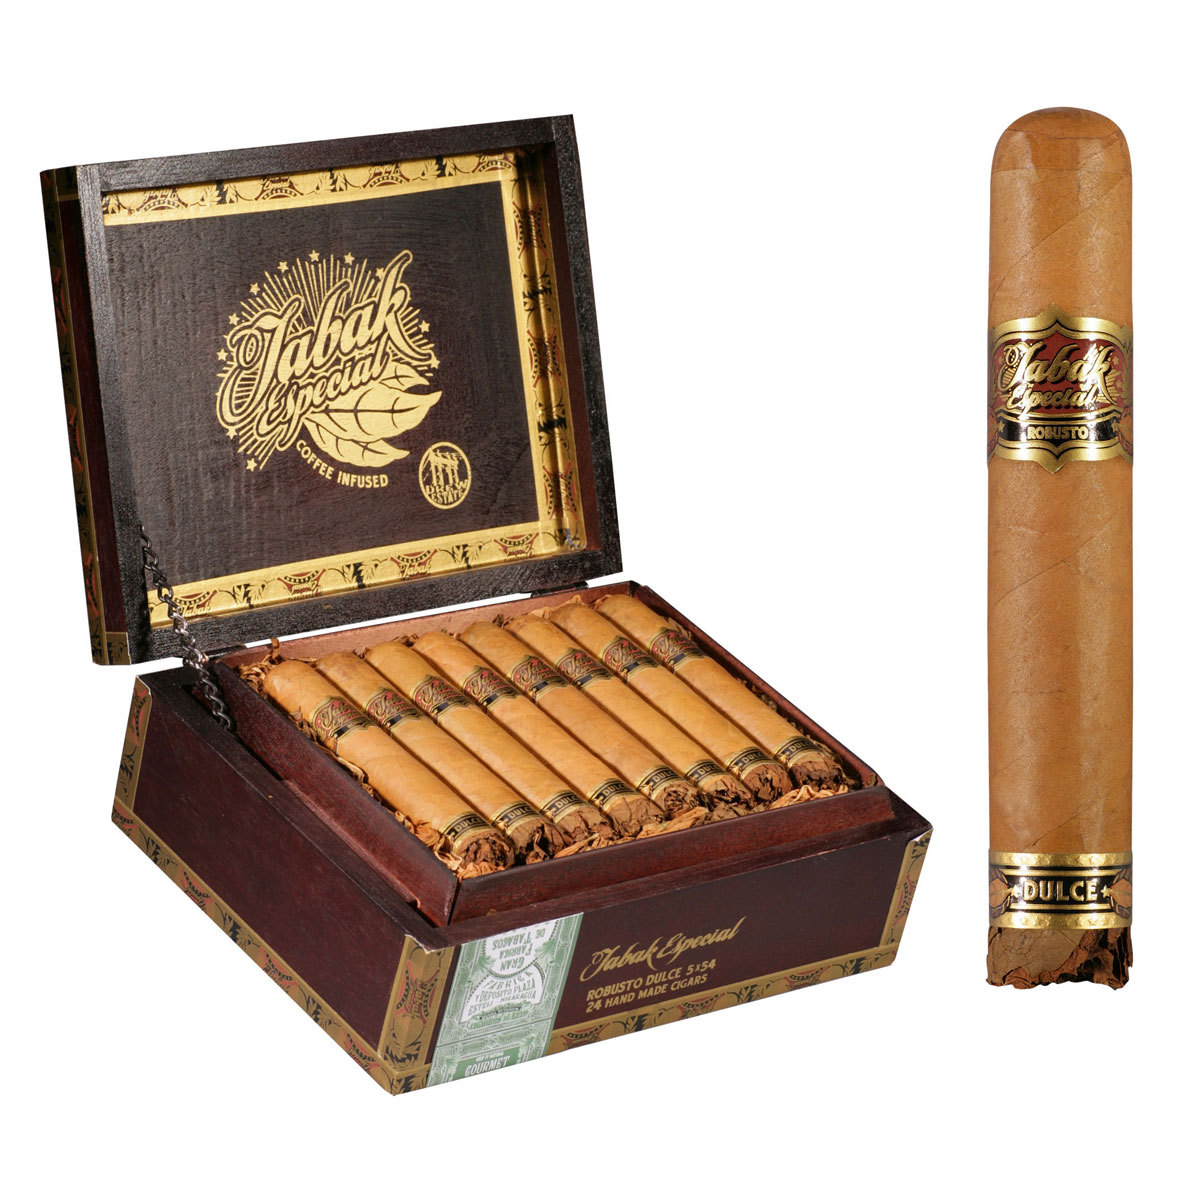 Drew Estate Tabak Robusto, Especial Limited Red Eye - 5 Pack